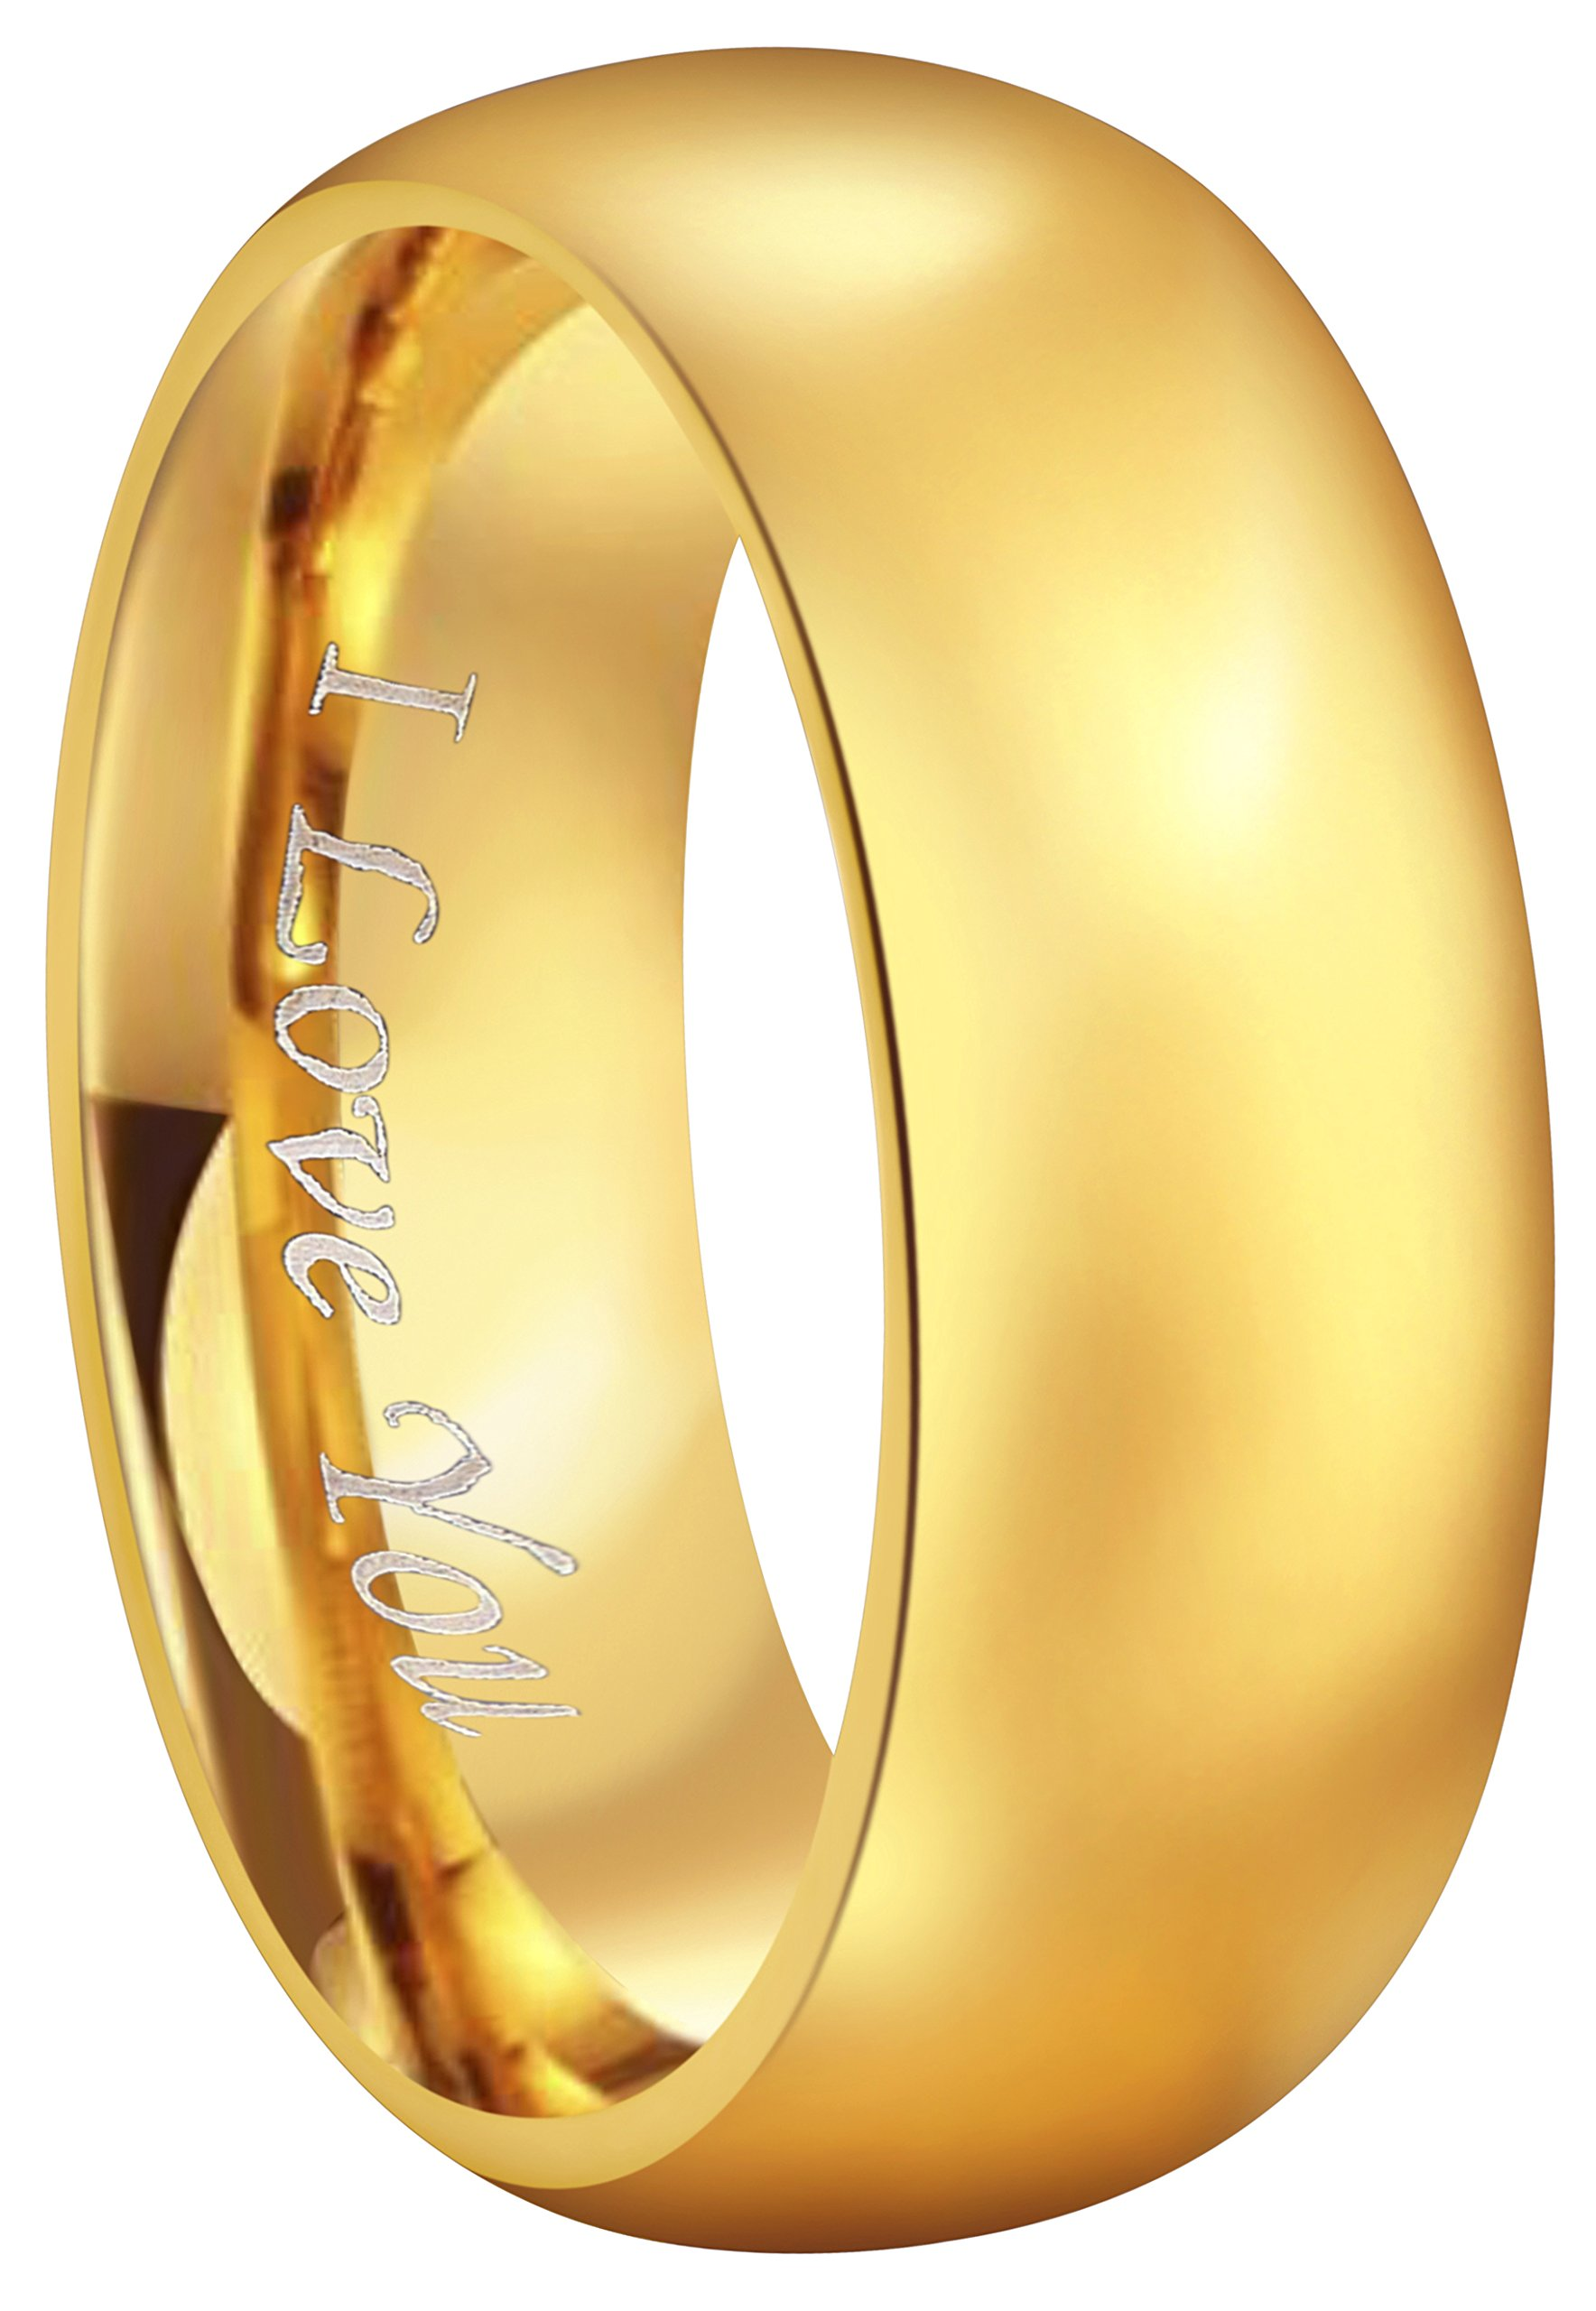 CROWNAL 4mm 6mm 8mm Tungsten Wedding Couple Bands Rings Men Women 24K Gold Plated Plain Dome Polished Engraved I Love You Size 4 To 17 (8mm,11)